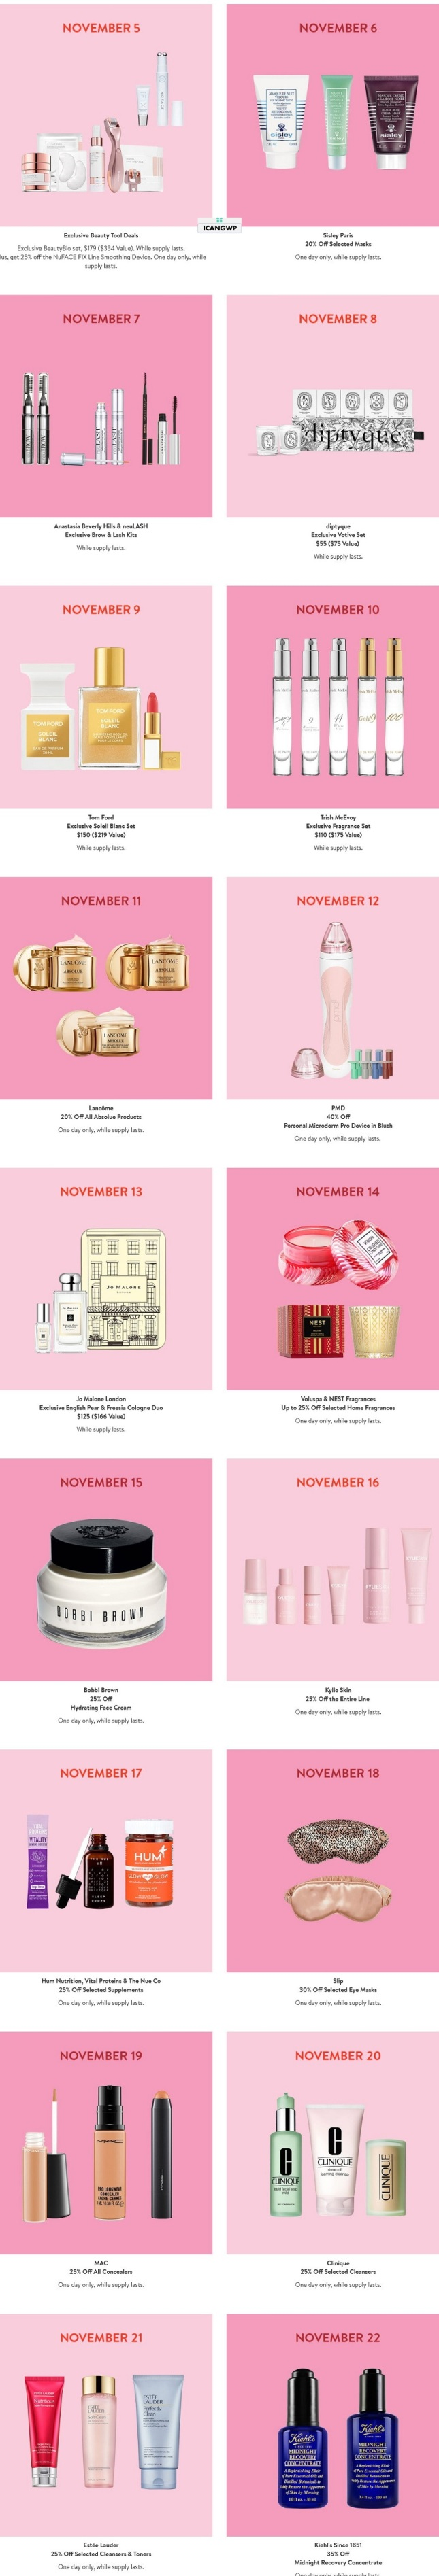 nordstrom Beauty daily Deals black friday icangwp (2)